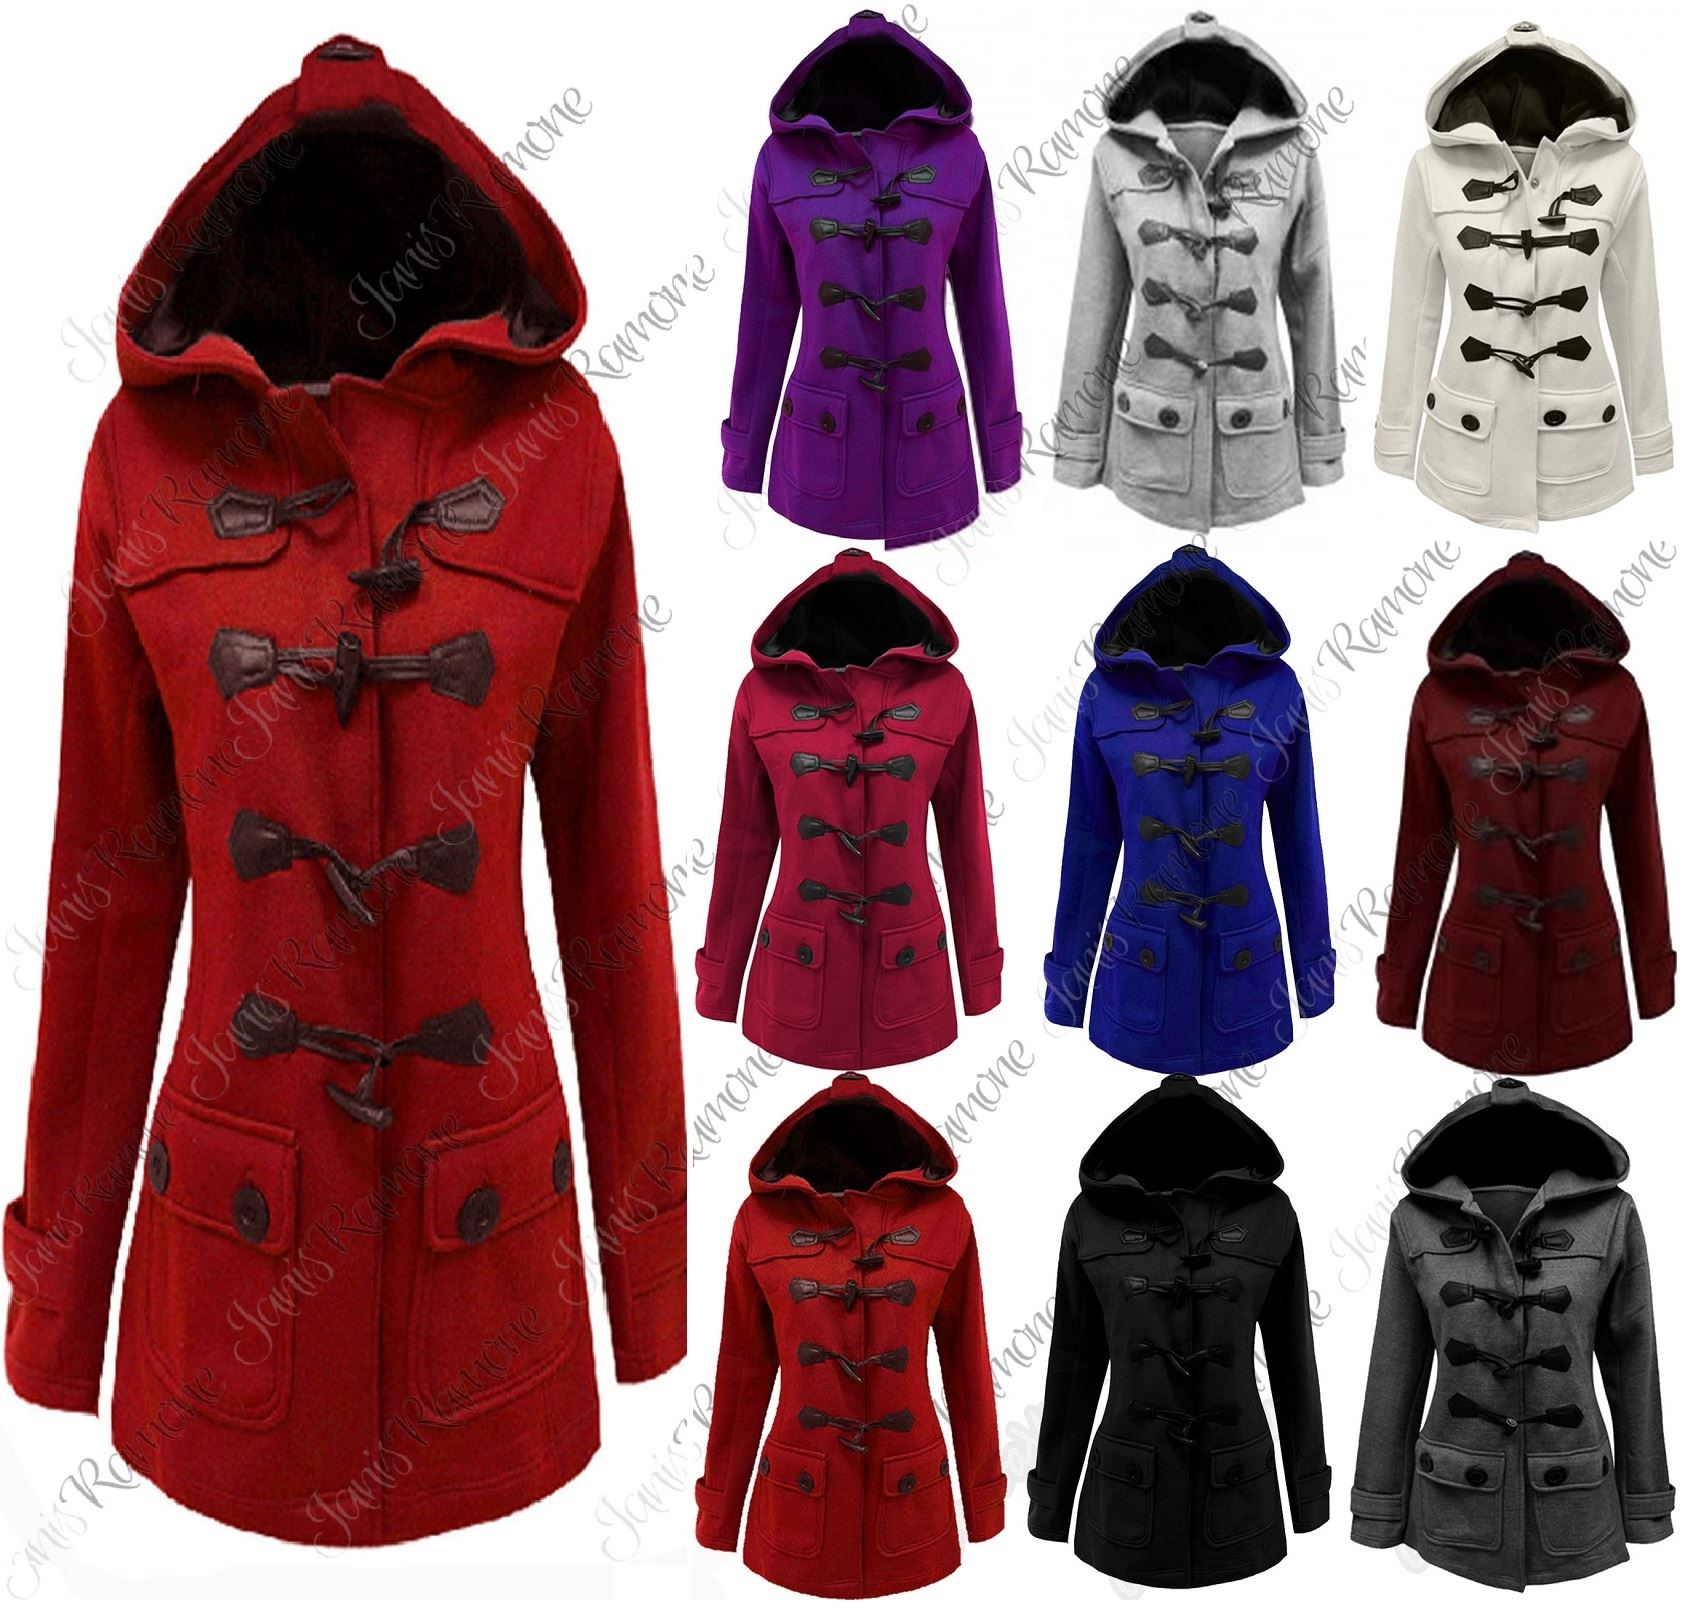 Ladies 12-24 New Charcoal Fleece Duffle Style Hooded Coat Long Jacket Ladies